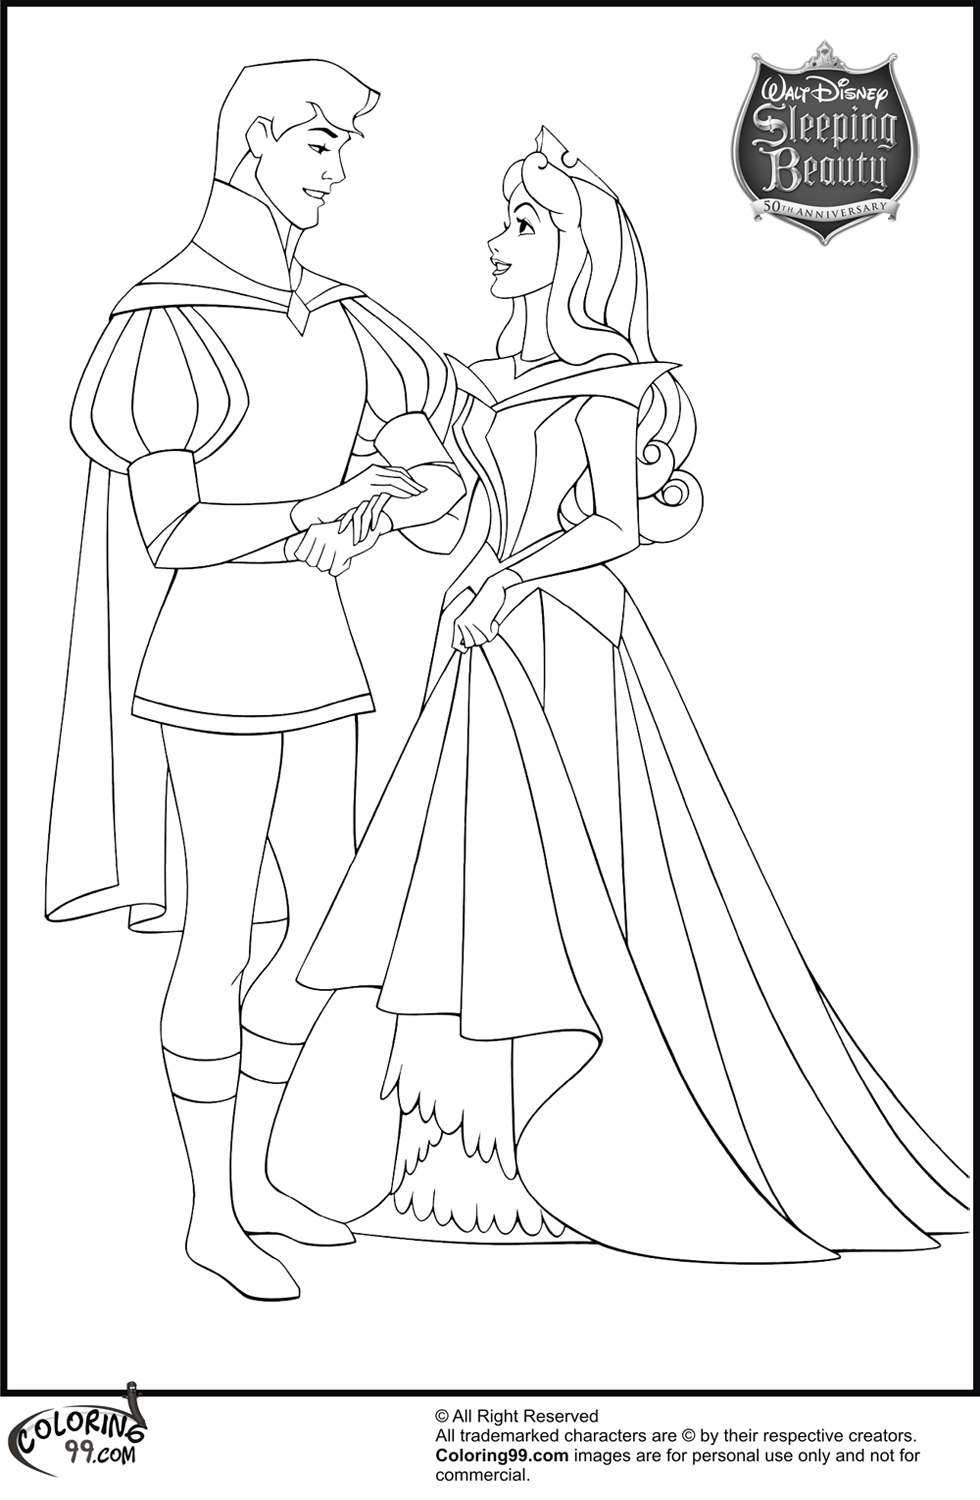 disney princess coloring worksheets disney princess aurora coloring pages minister coloring disney princess coloring worksheets